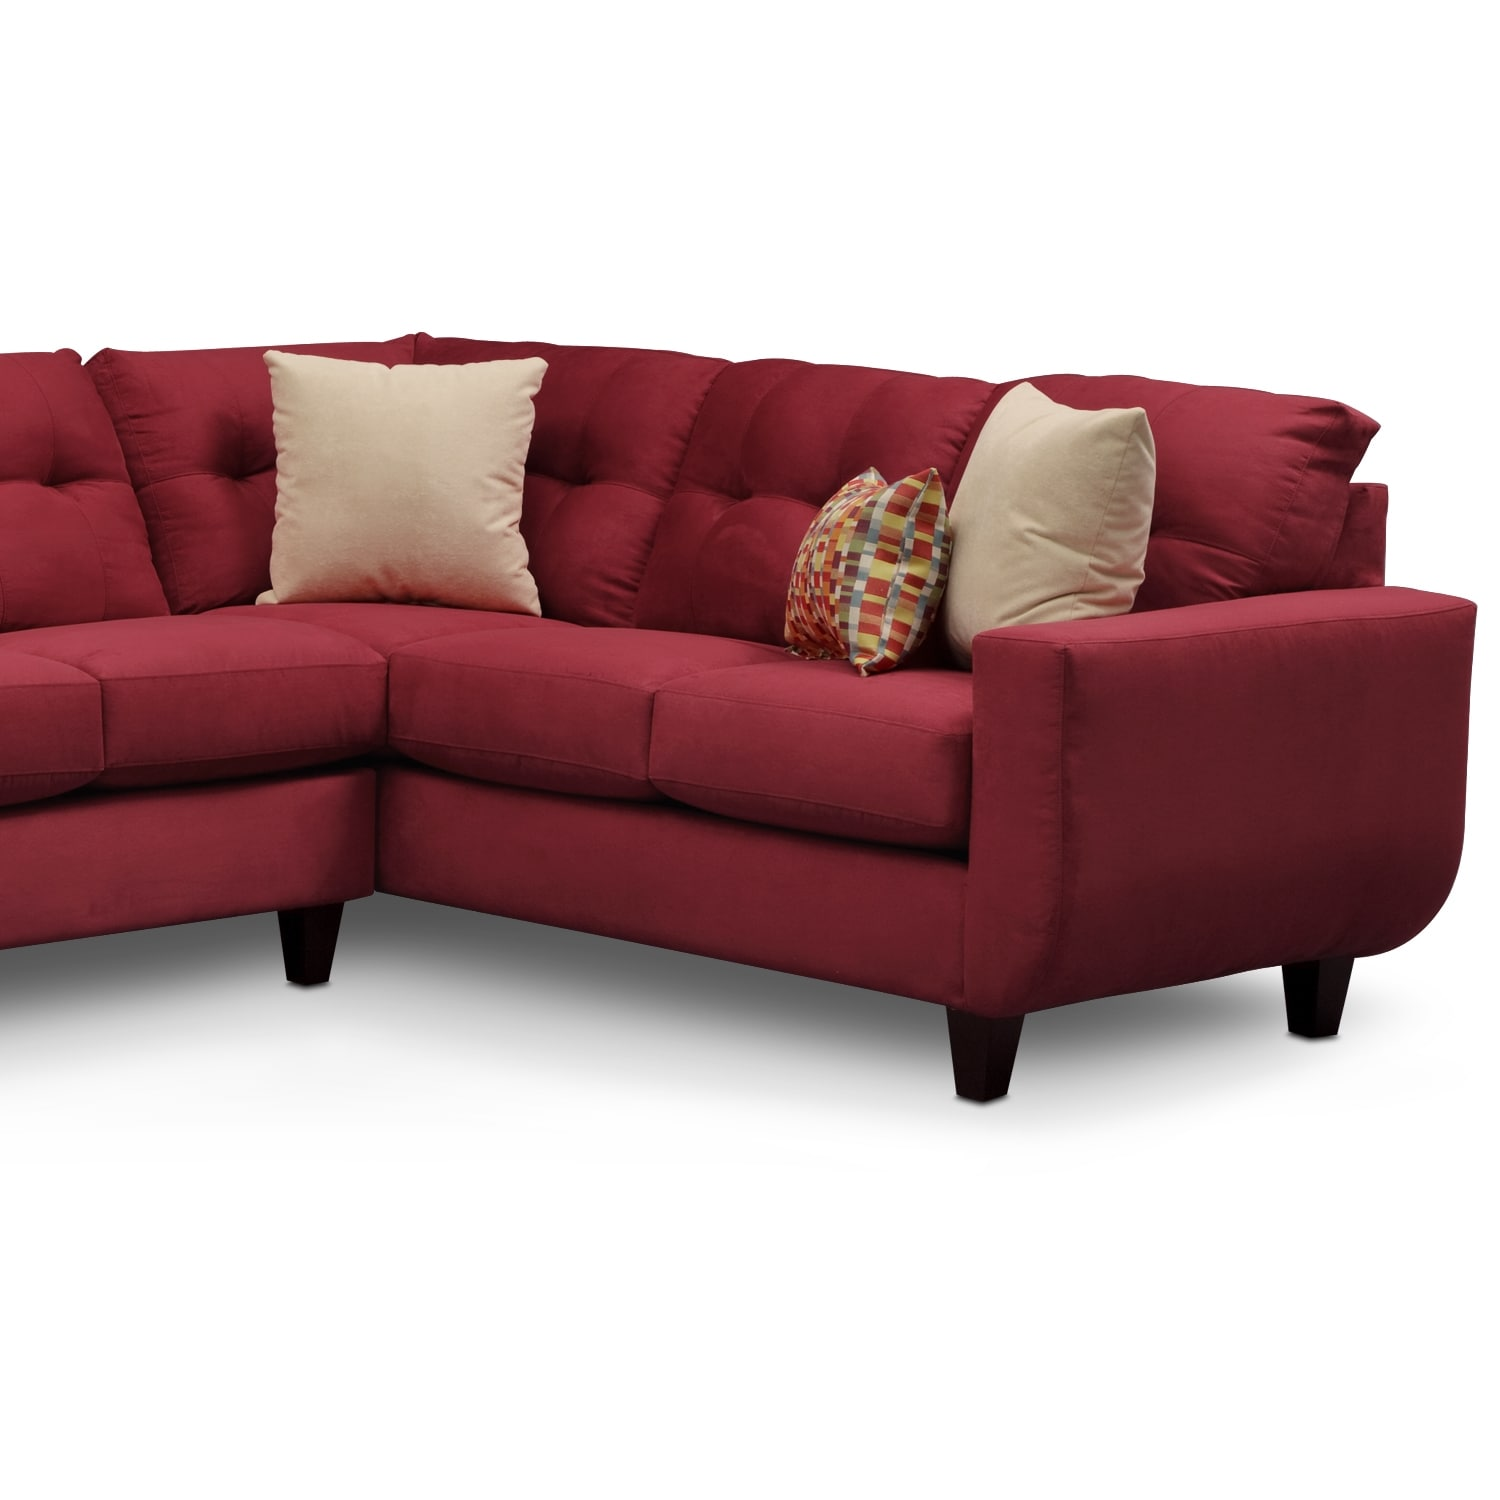 West Village 2 Piece Sectional Red Value City Furniture